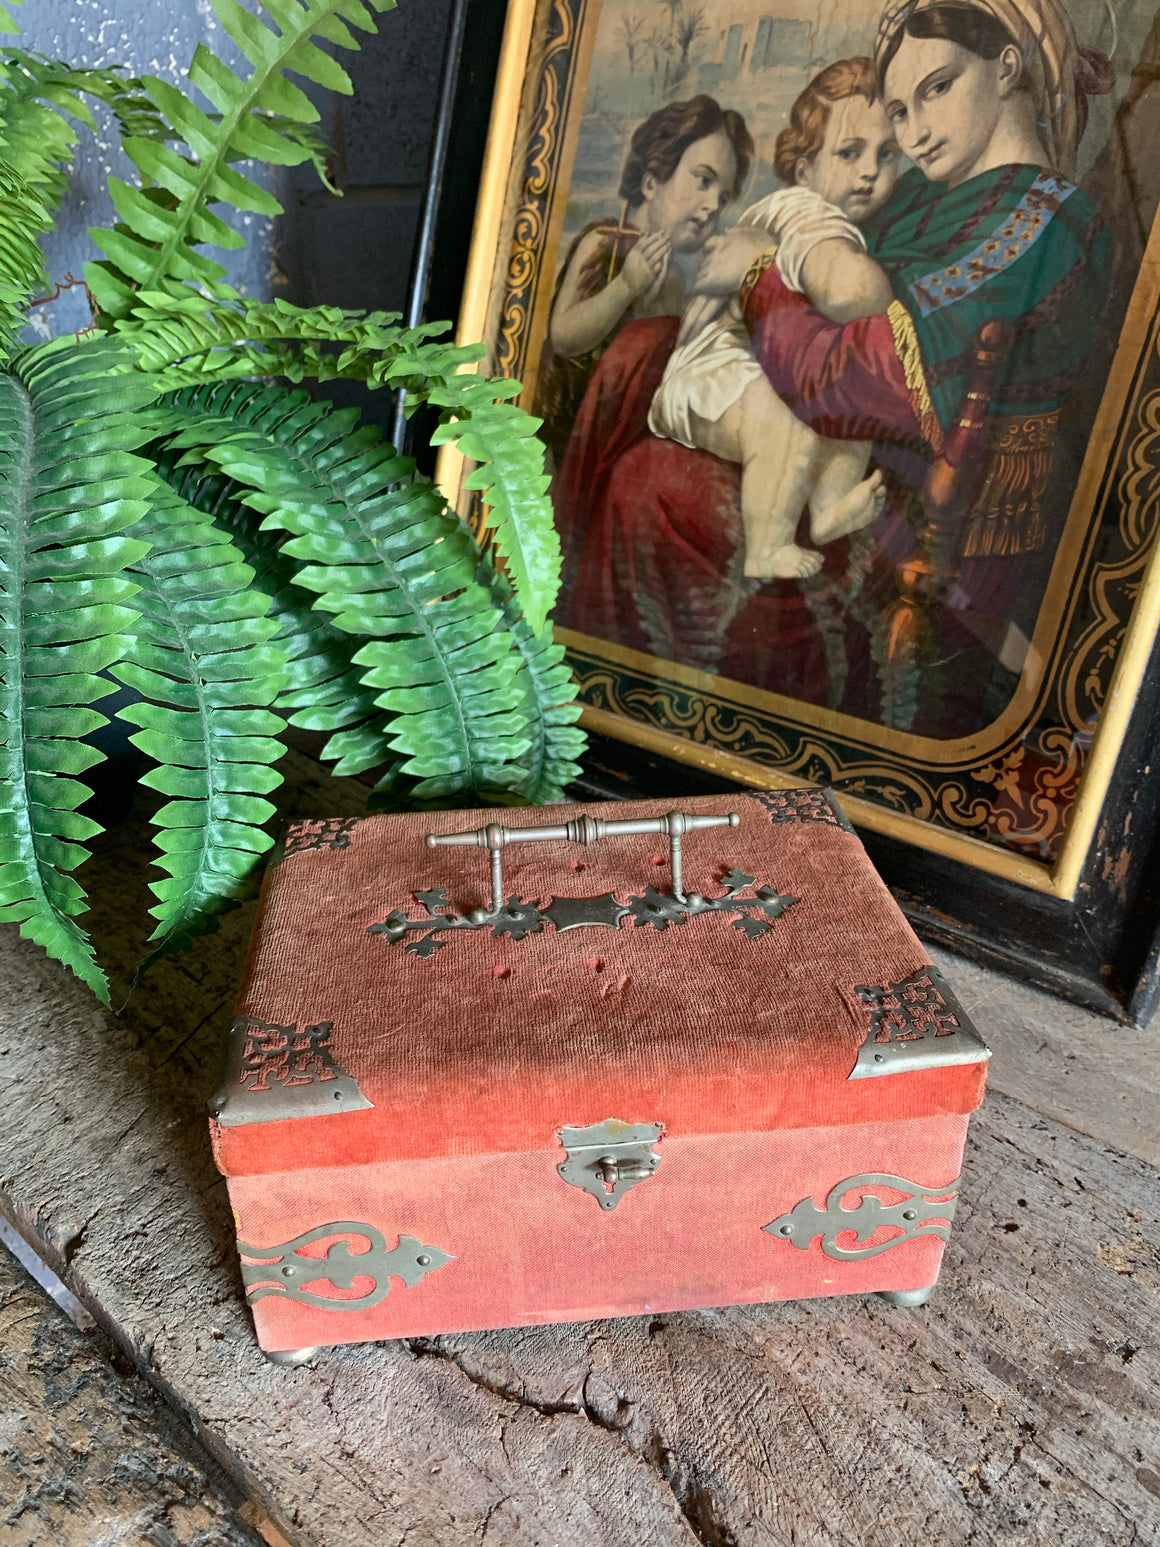 An ornate red velvet sewing box